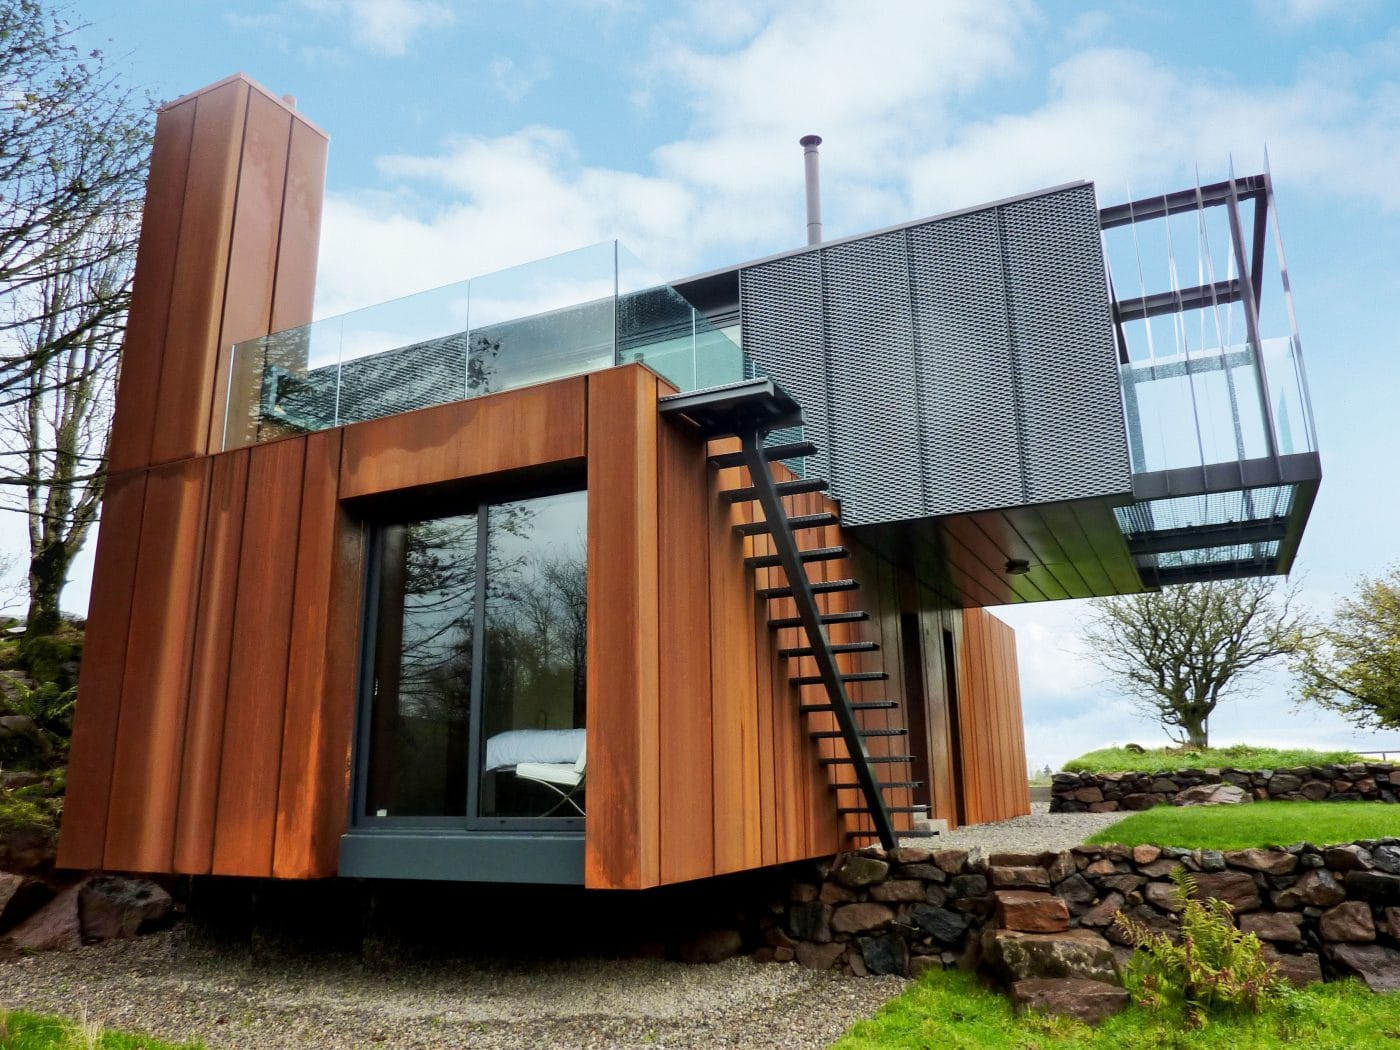 Grand designs shipping container home by patrick bradley for Wohncontainer design